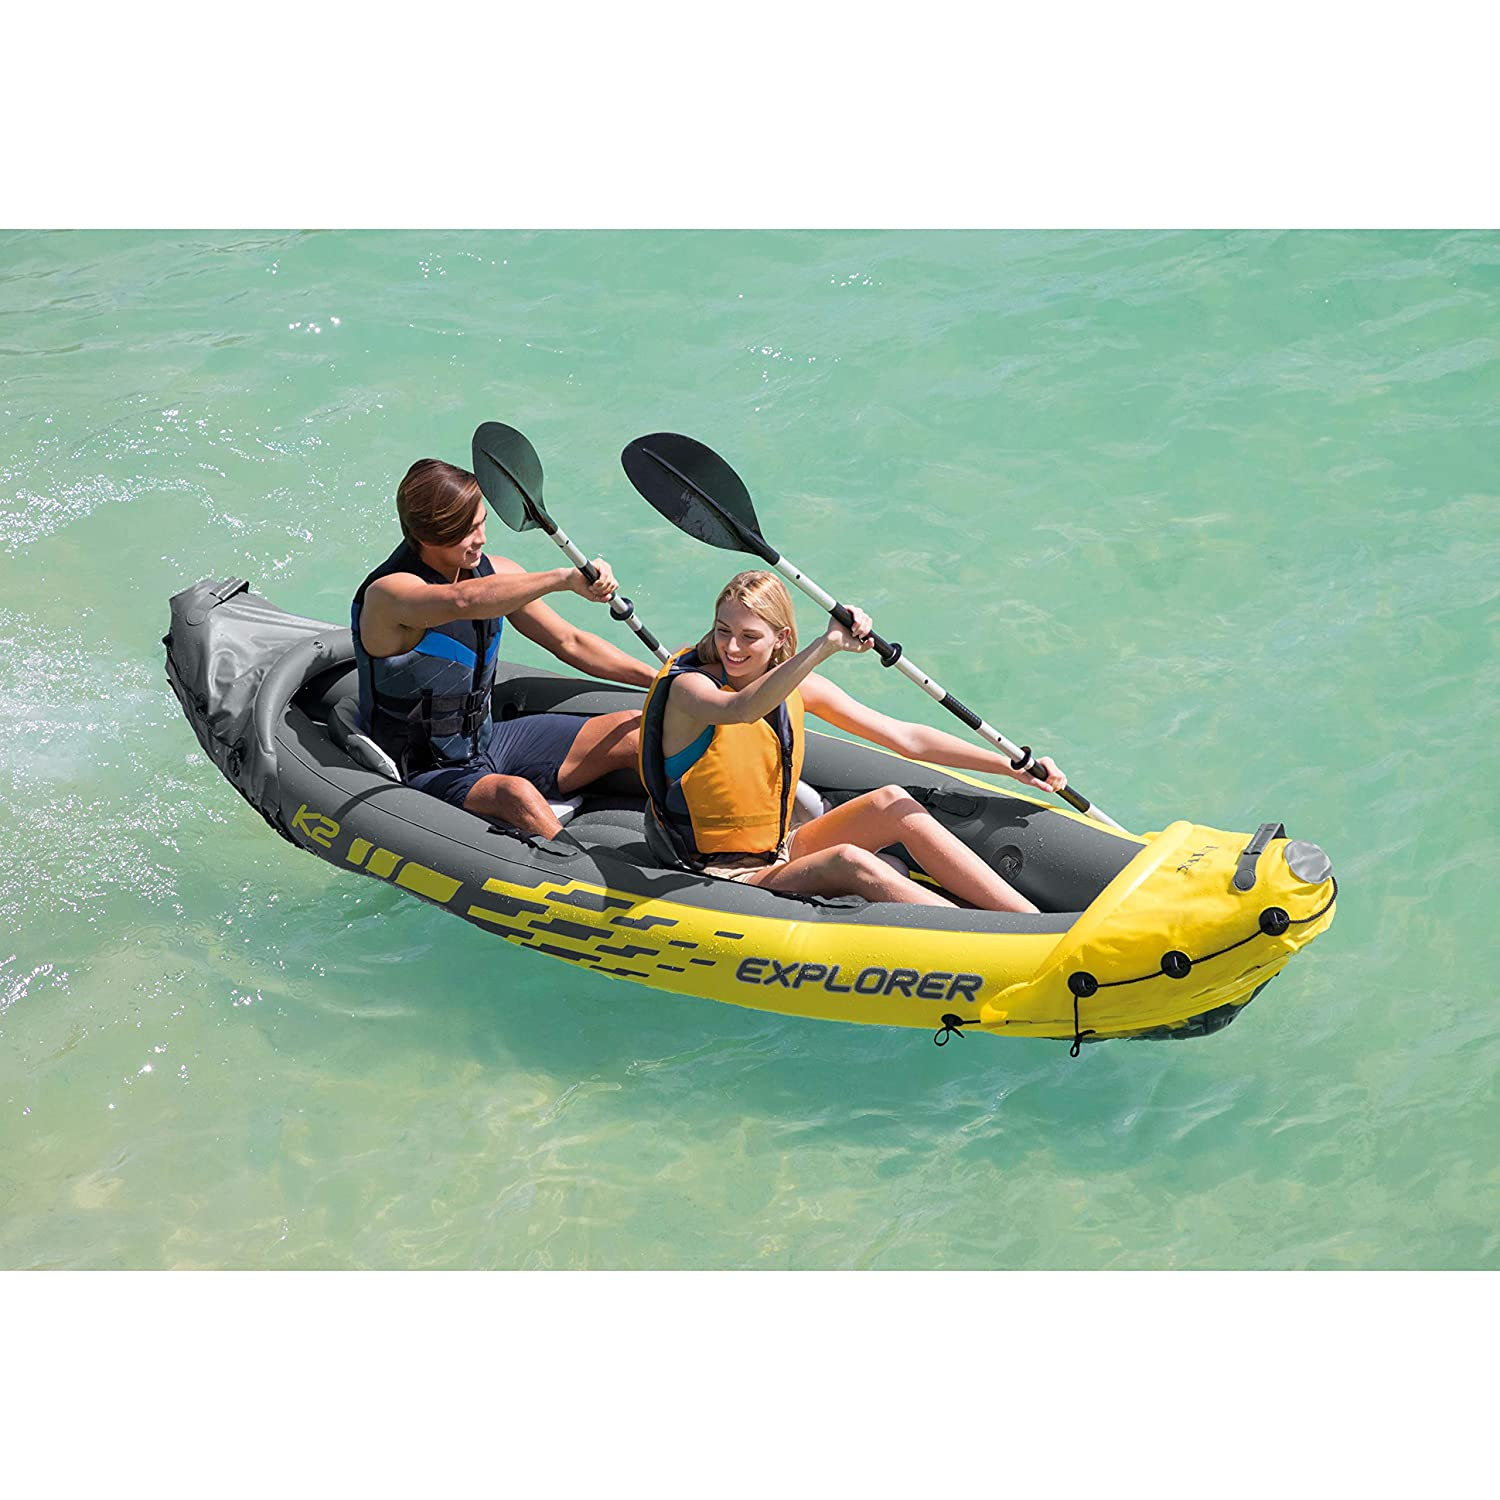 Intex Explorer K2 Kayak - 2 Person Inflatable Kayak Set